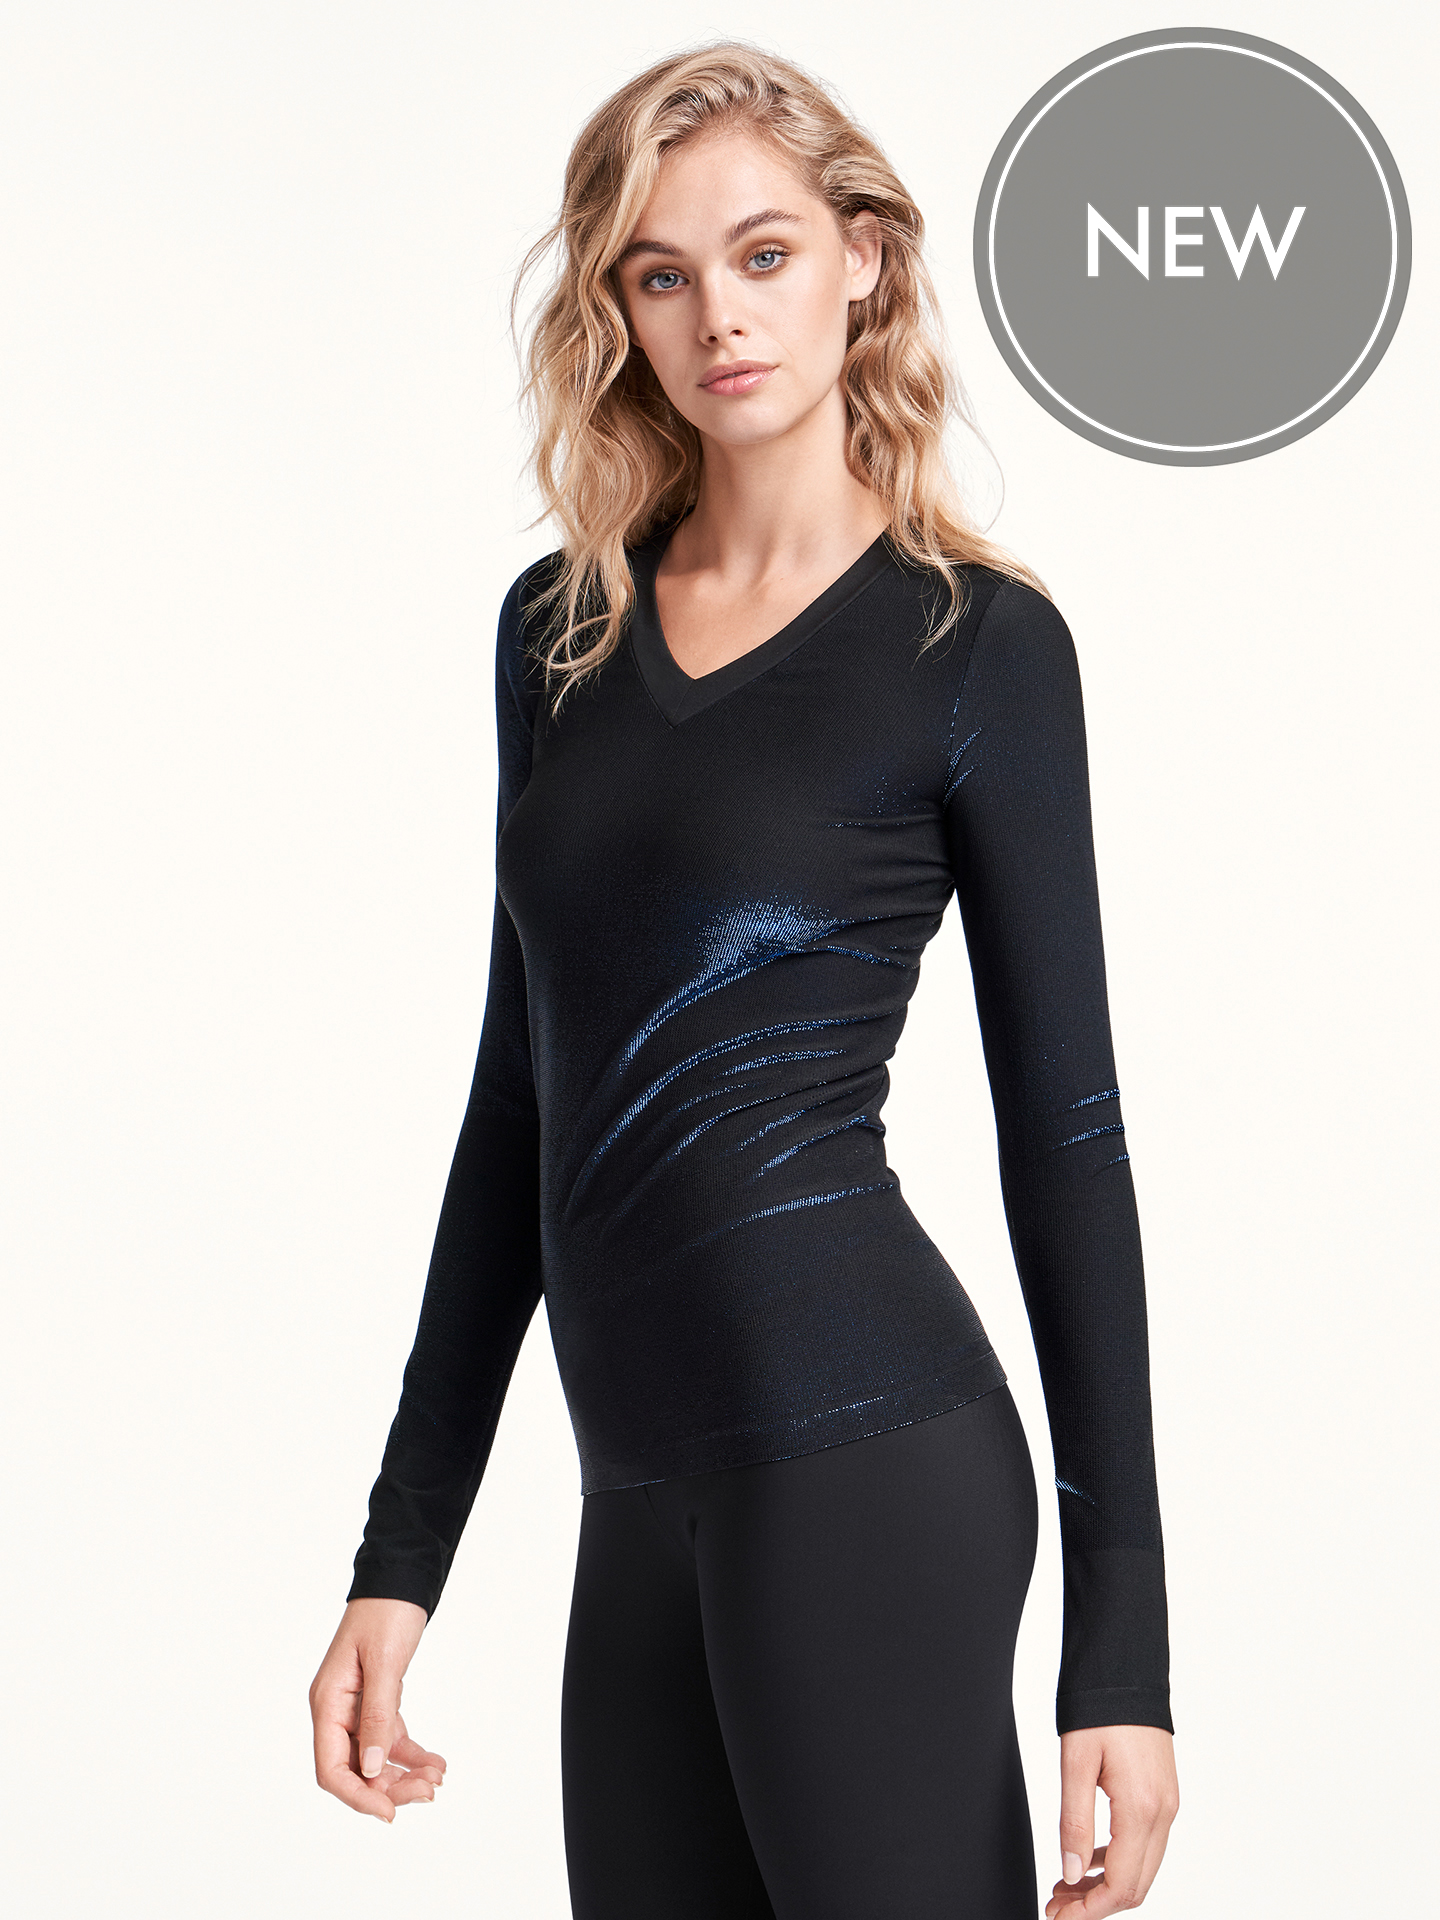 Wilma Pullover - 8944 - S   Bekleidung > Pullover   Wolford